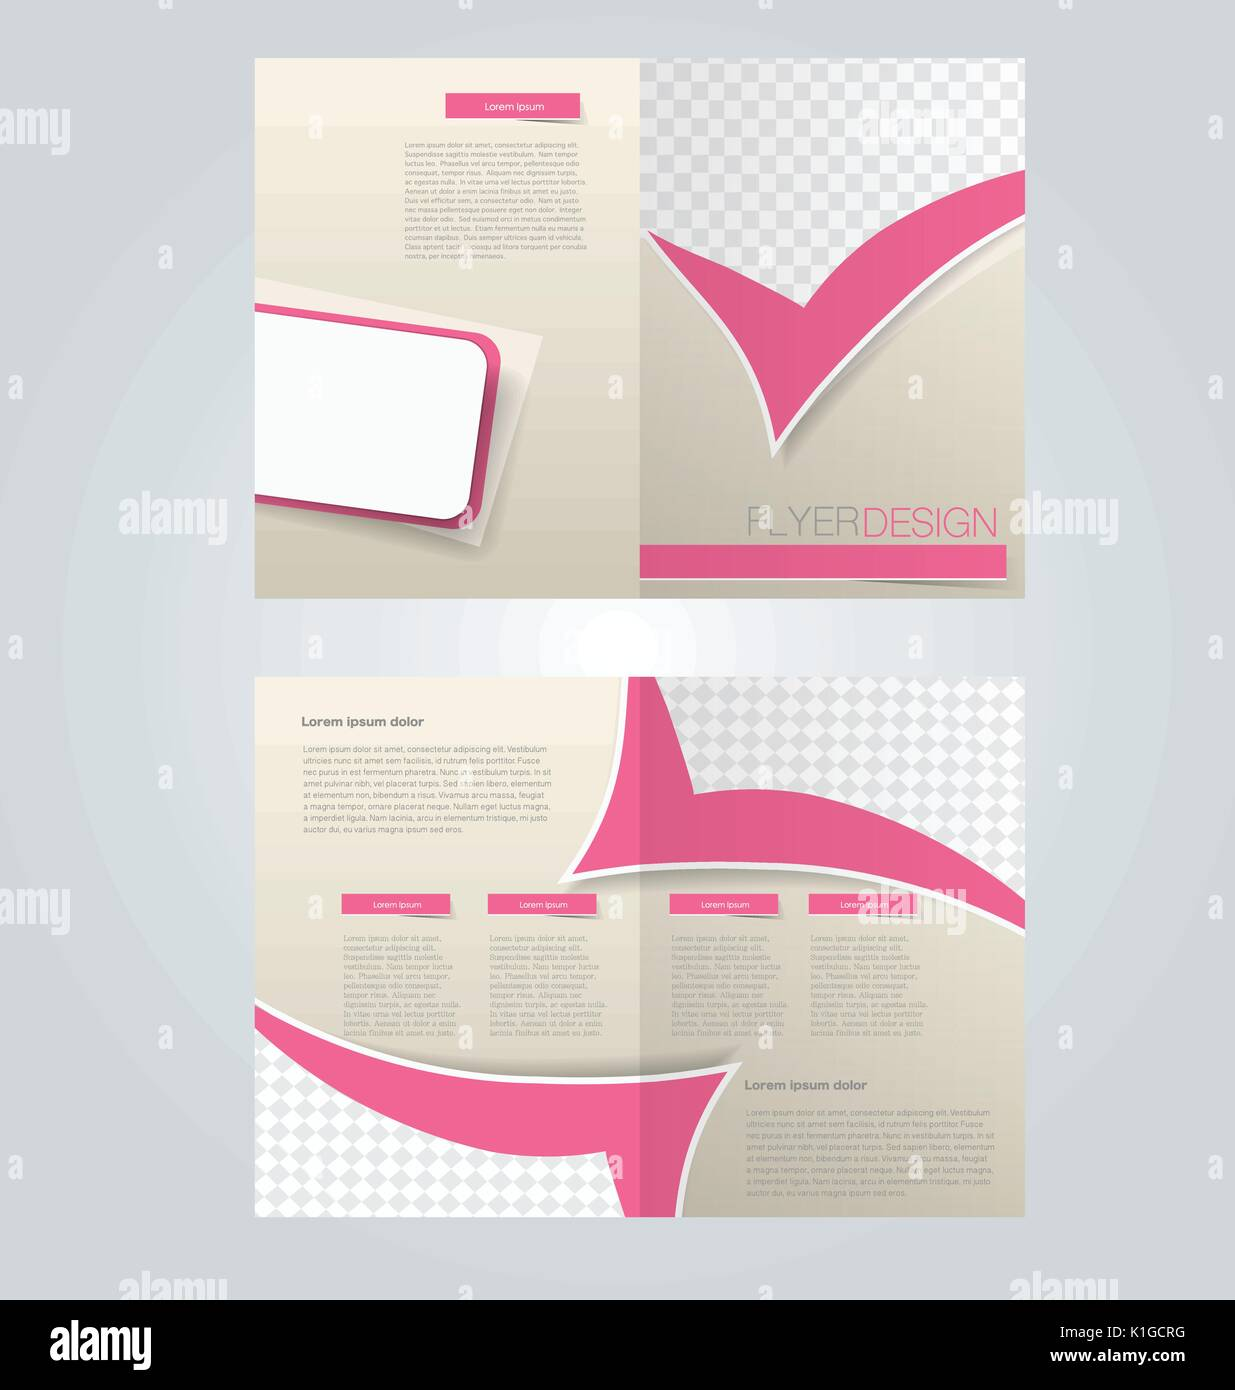 brochure template design two page mock up flyer pink color vector